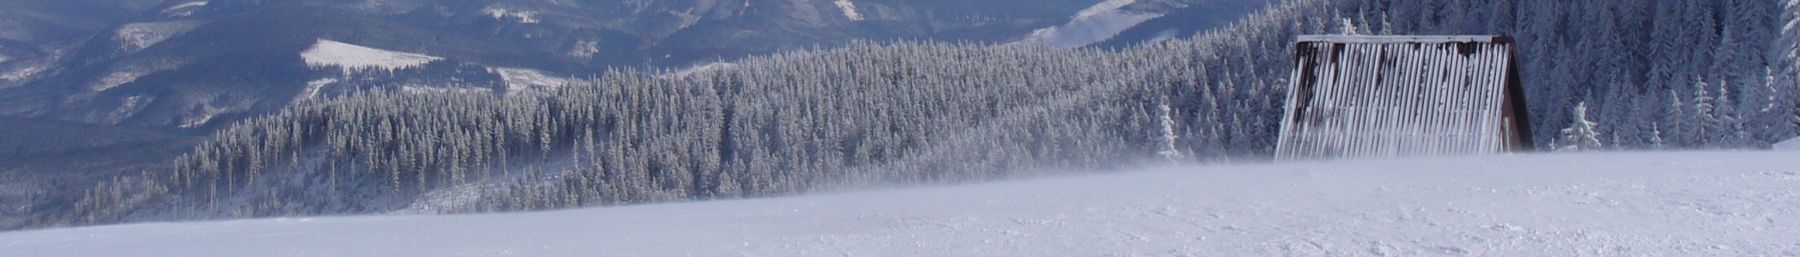 Babia Góra in winter - view from Hala Miziowa